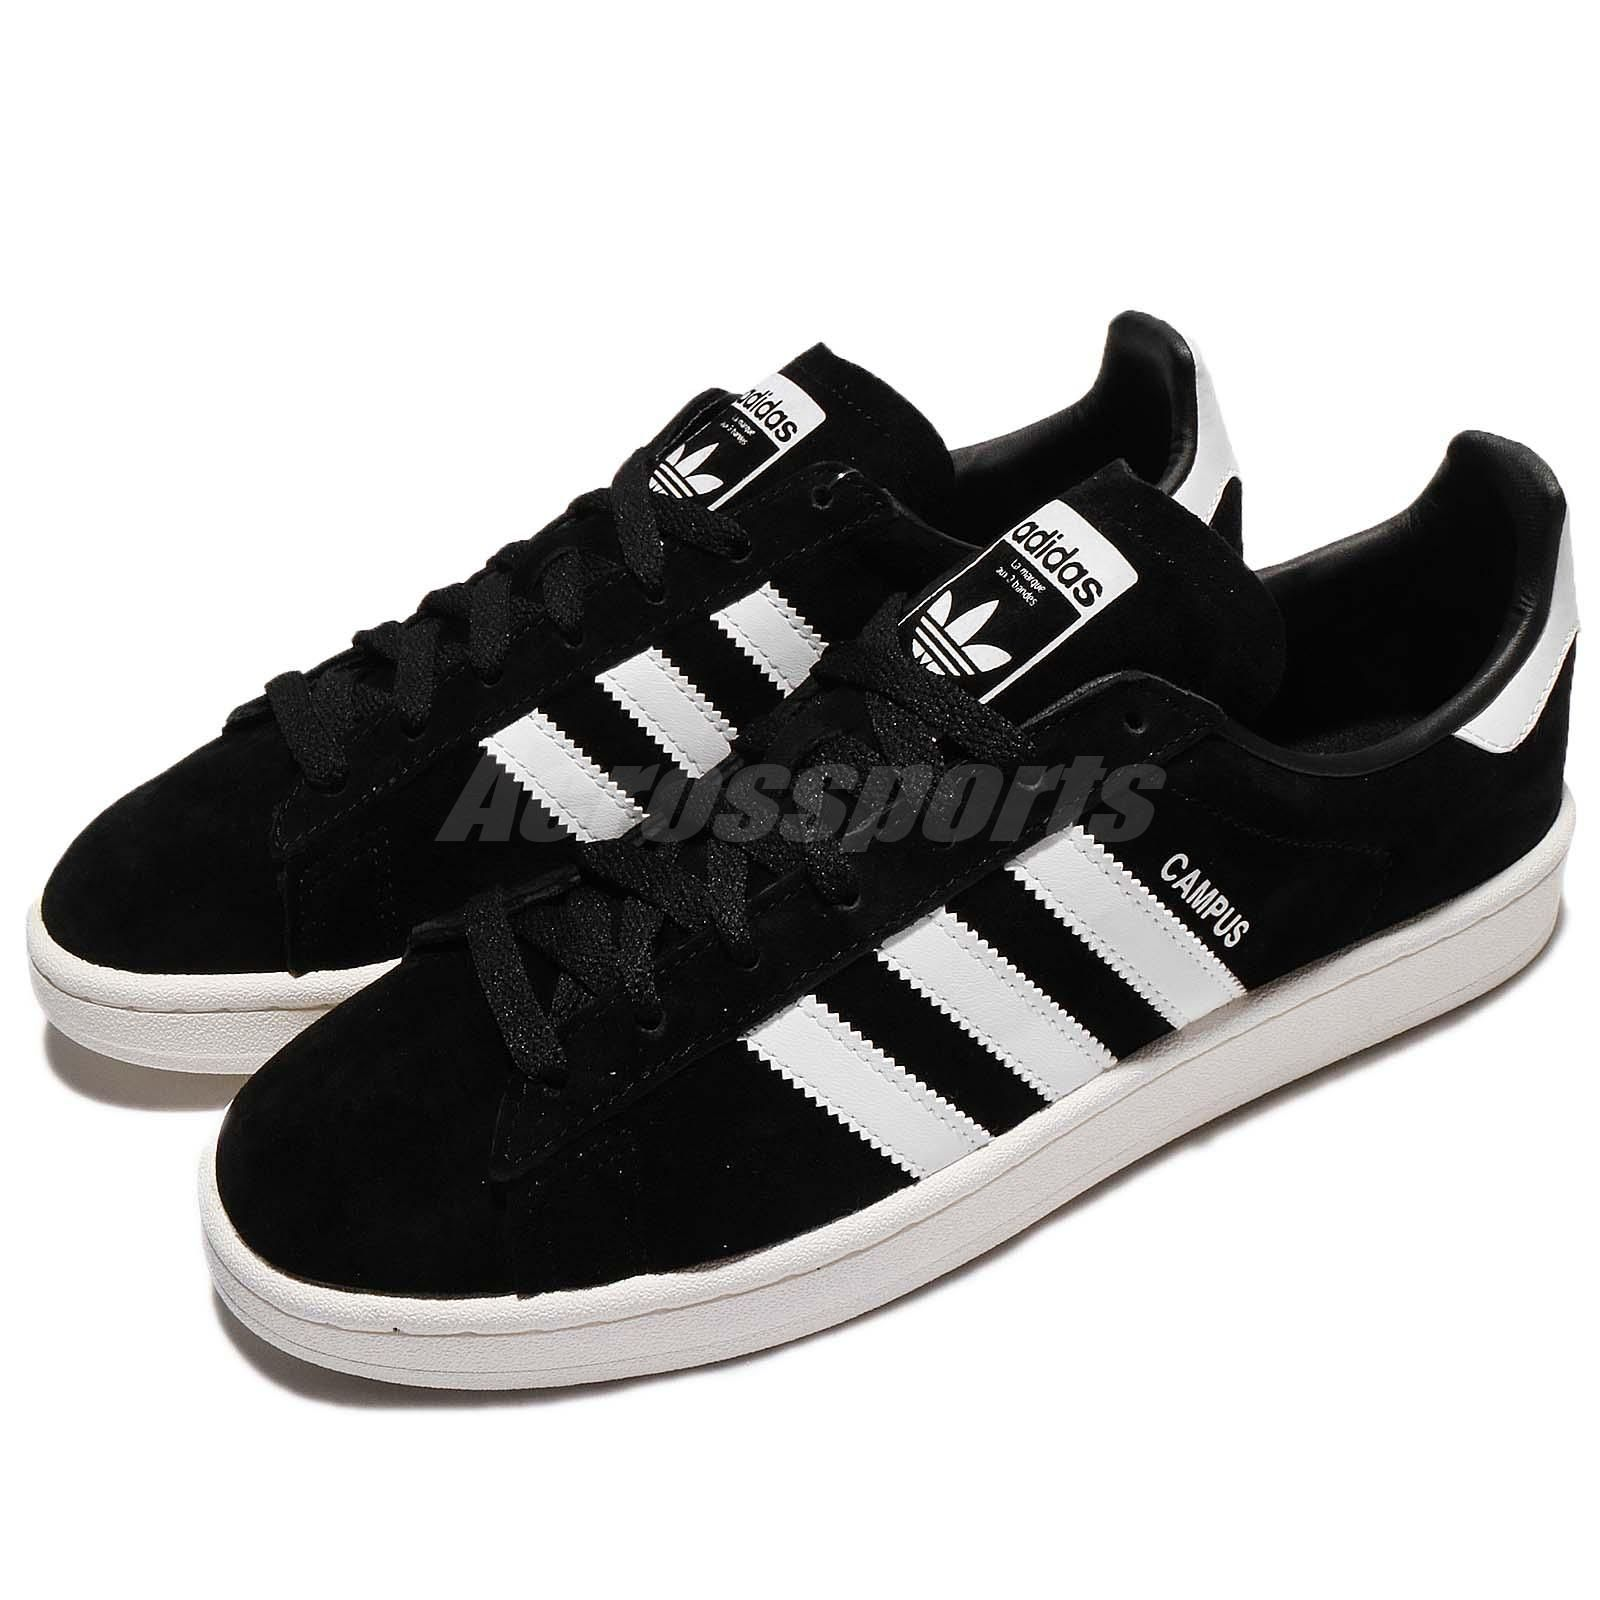 old school shoes adidas online -